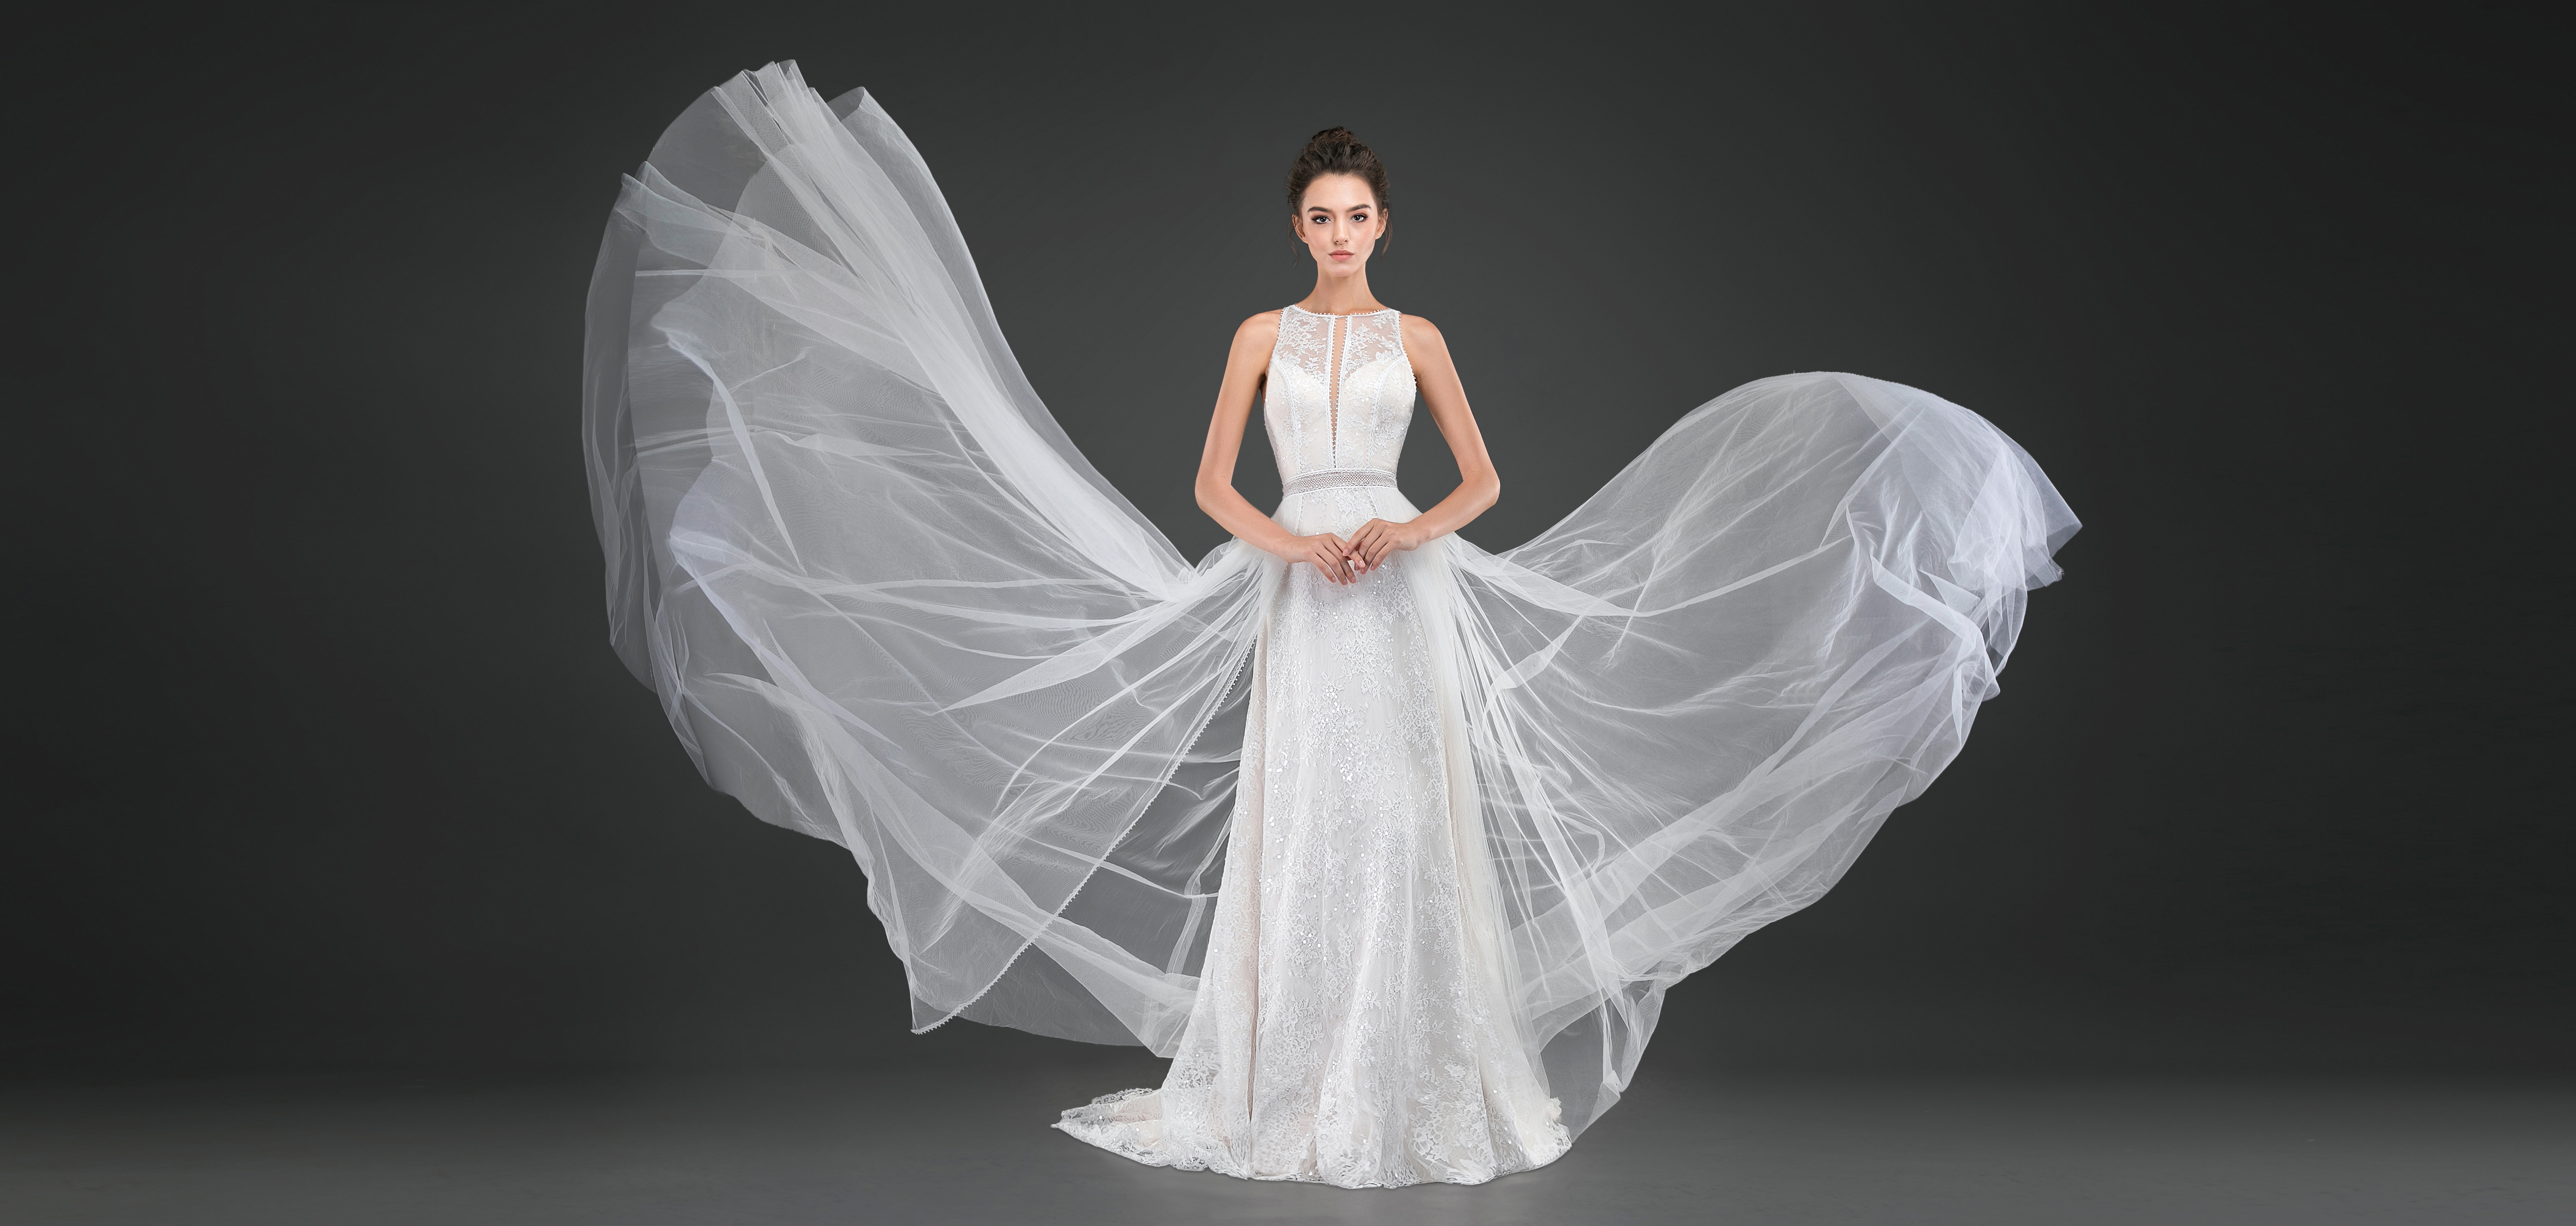 wedding dresses online, wedding dress mermaid, wedding dress for plus size